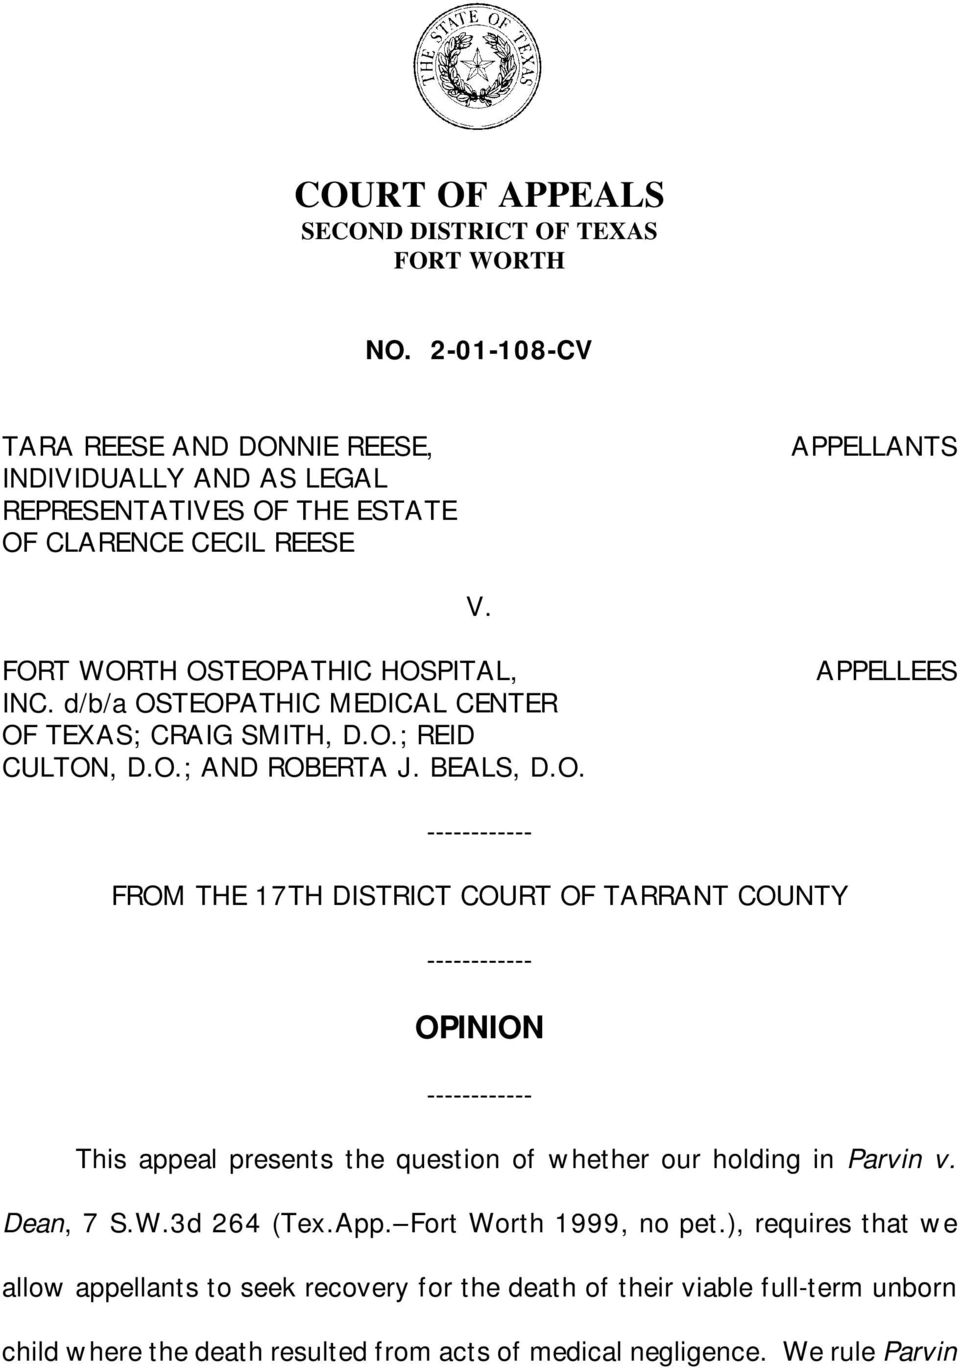 d/b/a OSTEOPATHIC MEDICAL CENTER OF TEXAS; CRAIG SMITH, D.O.; REID CULTON, D.O.; AND ROBERTA J. BEALS, D.O. APPELLEES ------------ FROM THE 17TH DISTRICT COURT OF TARRANT COUNTY ------------ OPINION ------------ This appeal presents the question of whether our holding in Parvin v.